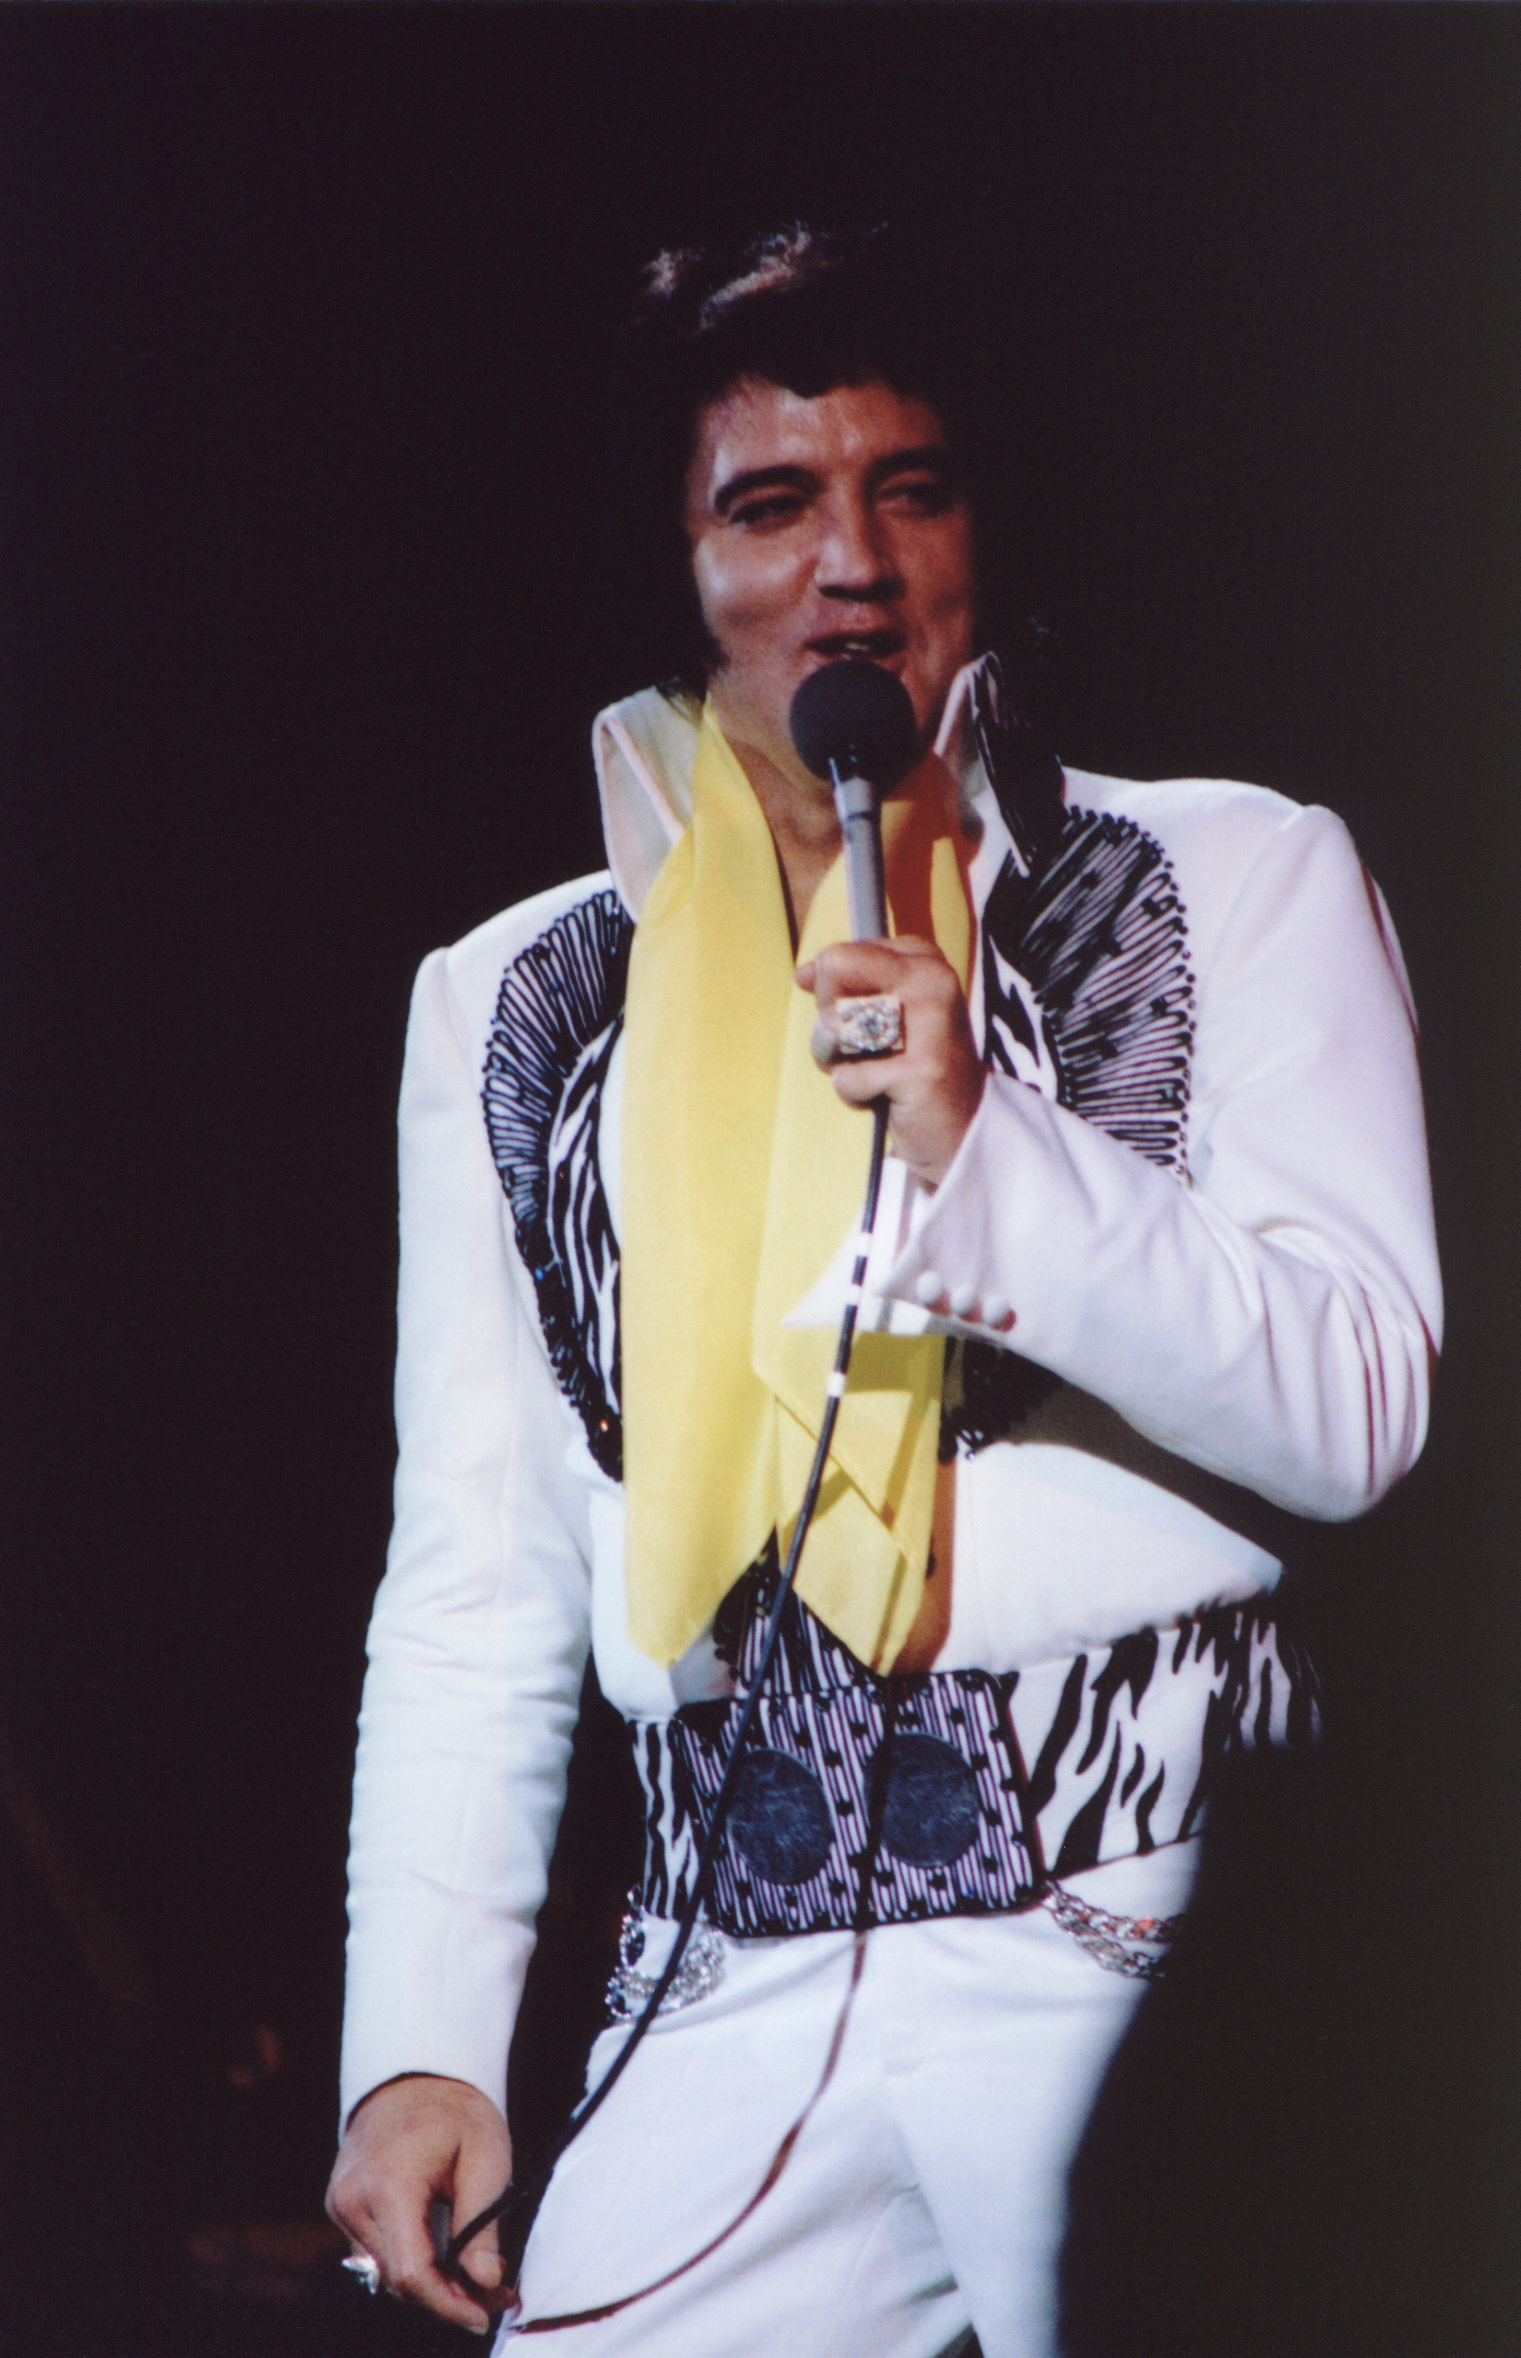 https://i1.wp.com/www.elvisconcerts.com/pictures/s75060101.jpg